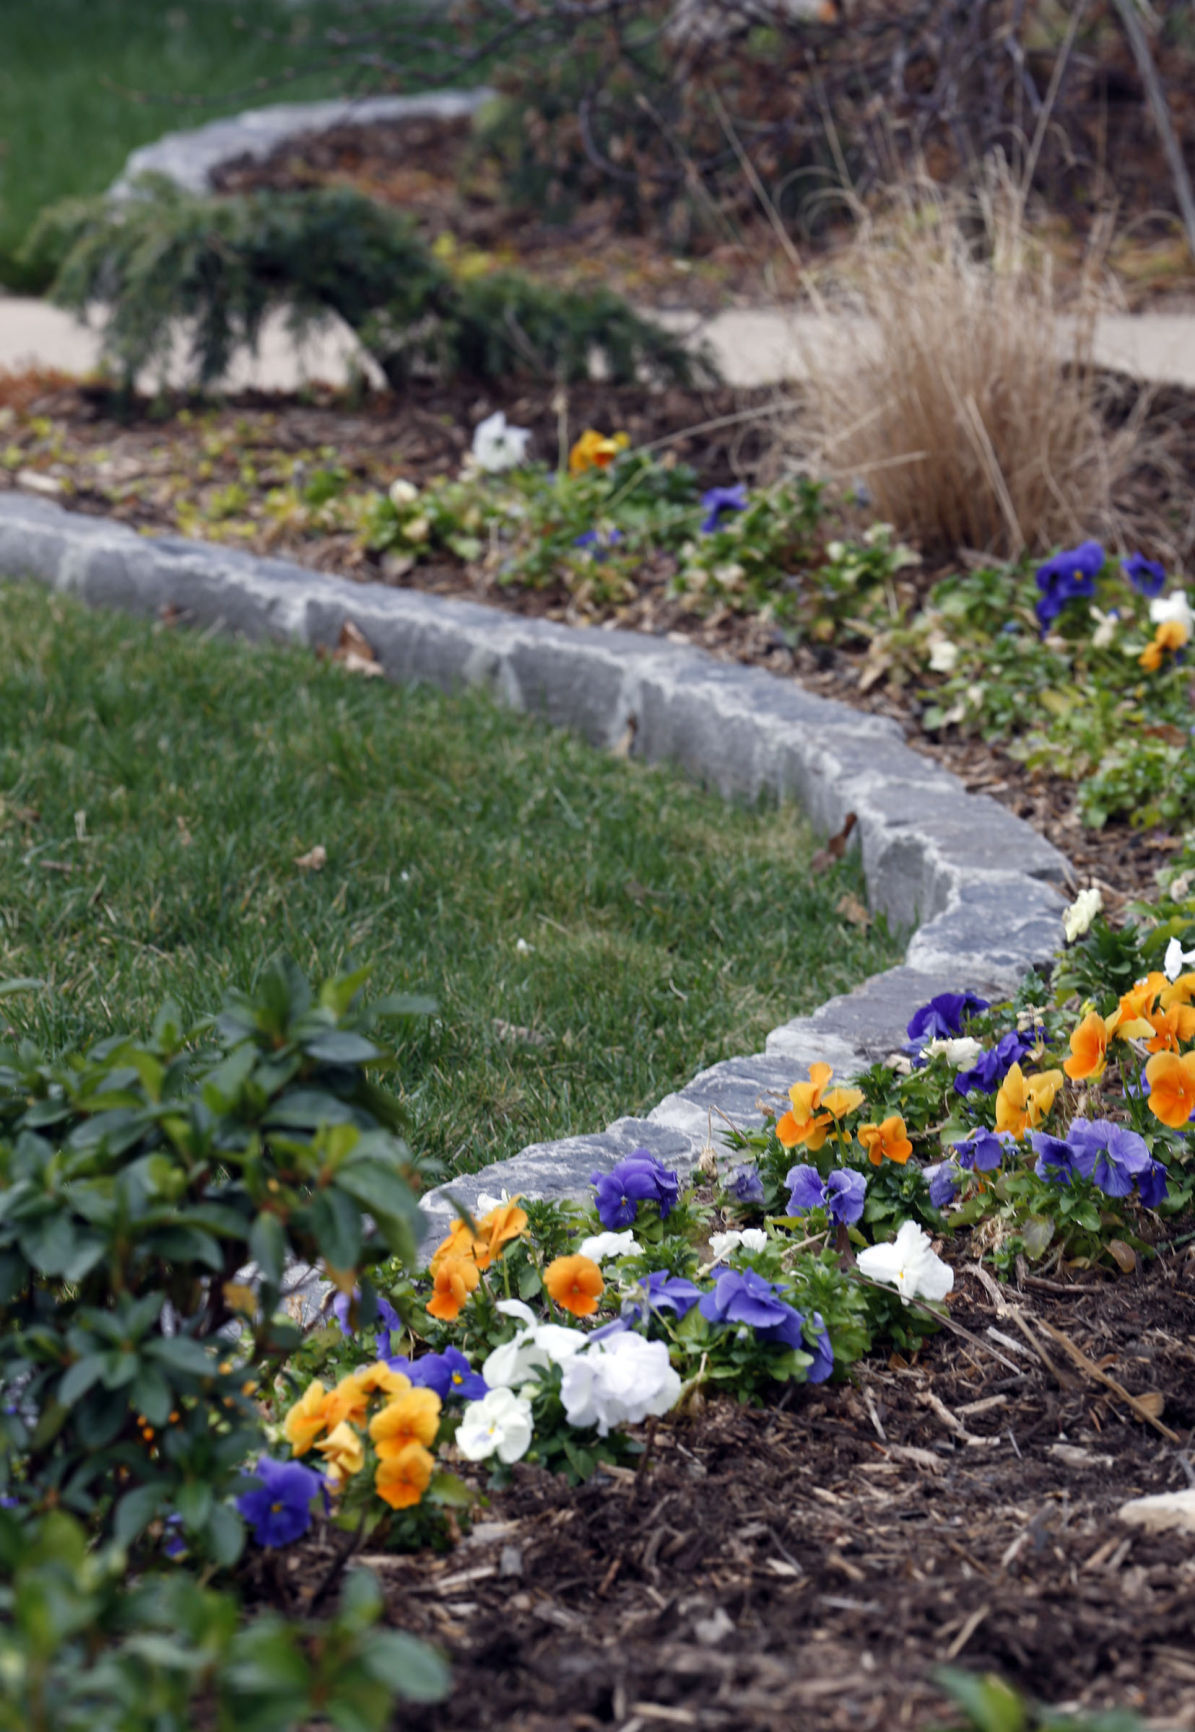 Low Cost Landscaping low-cost landscaping can boost home values | tulsa business